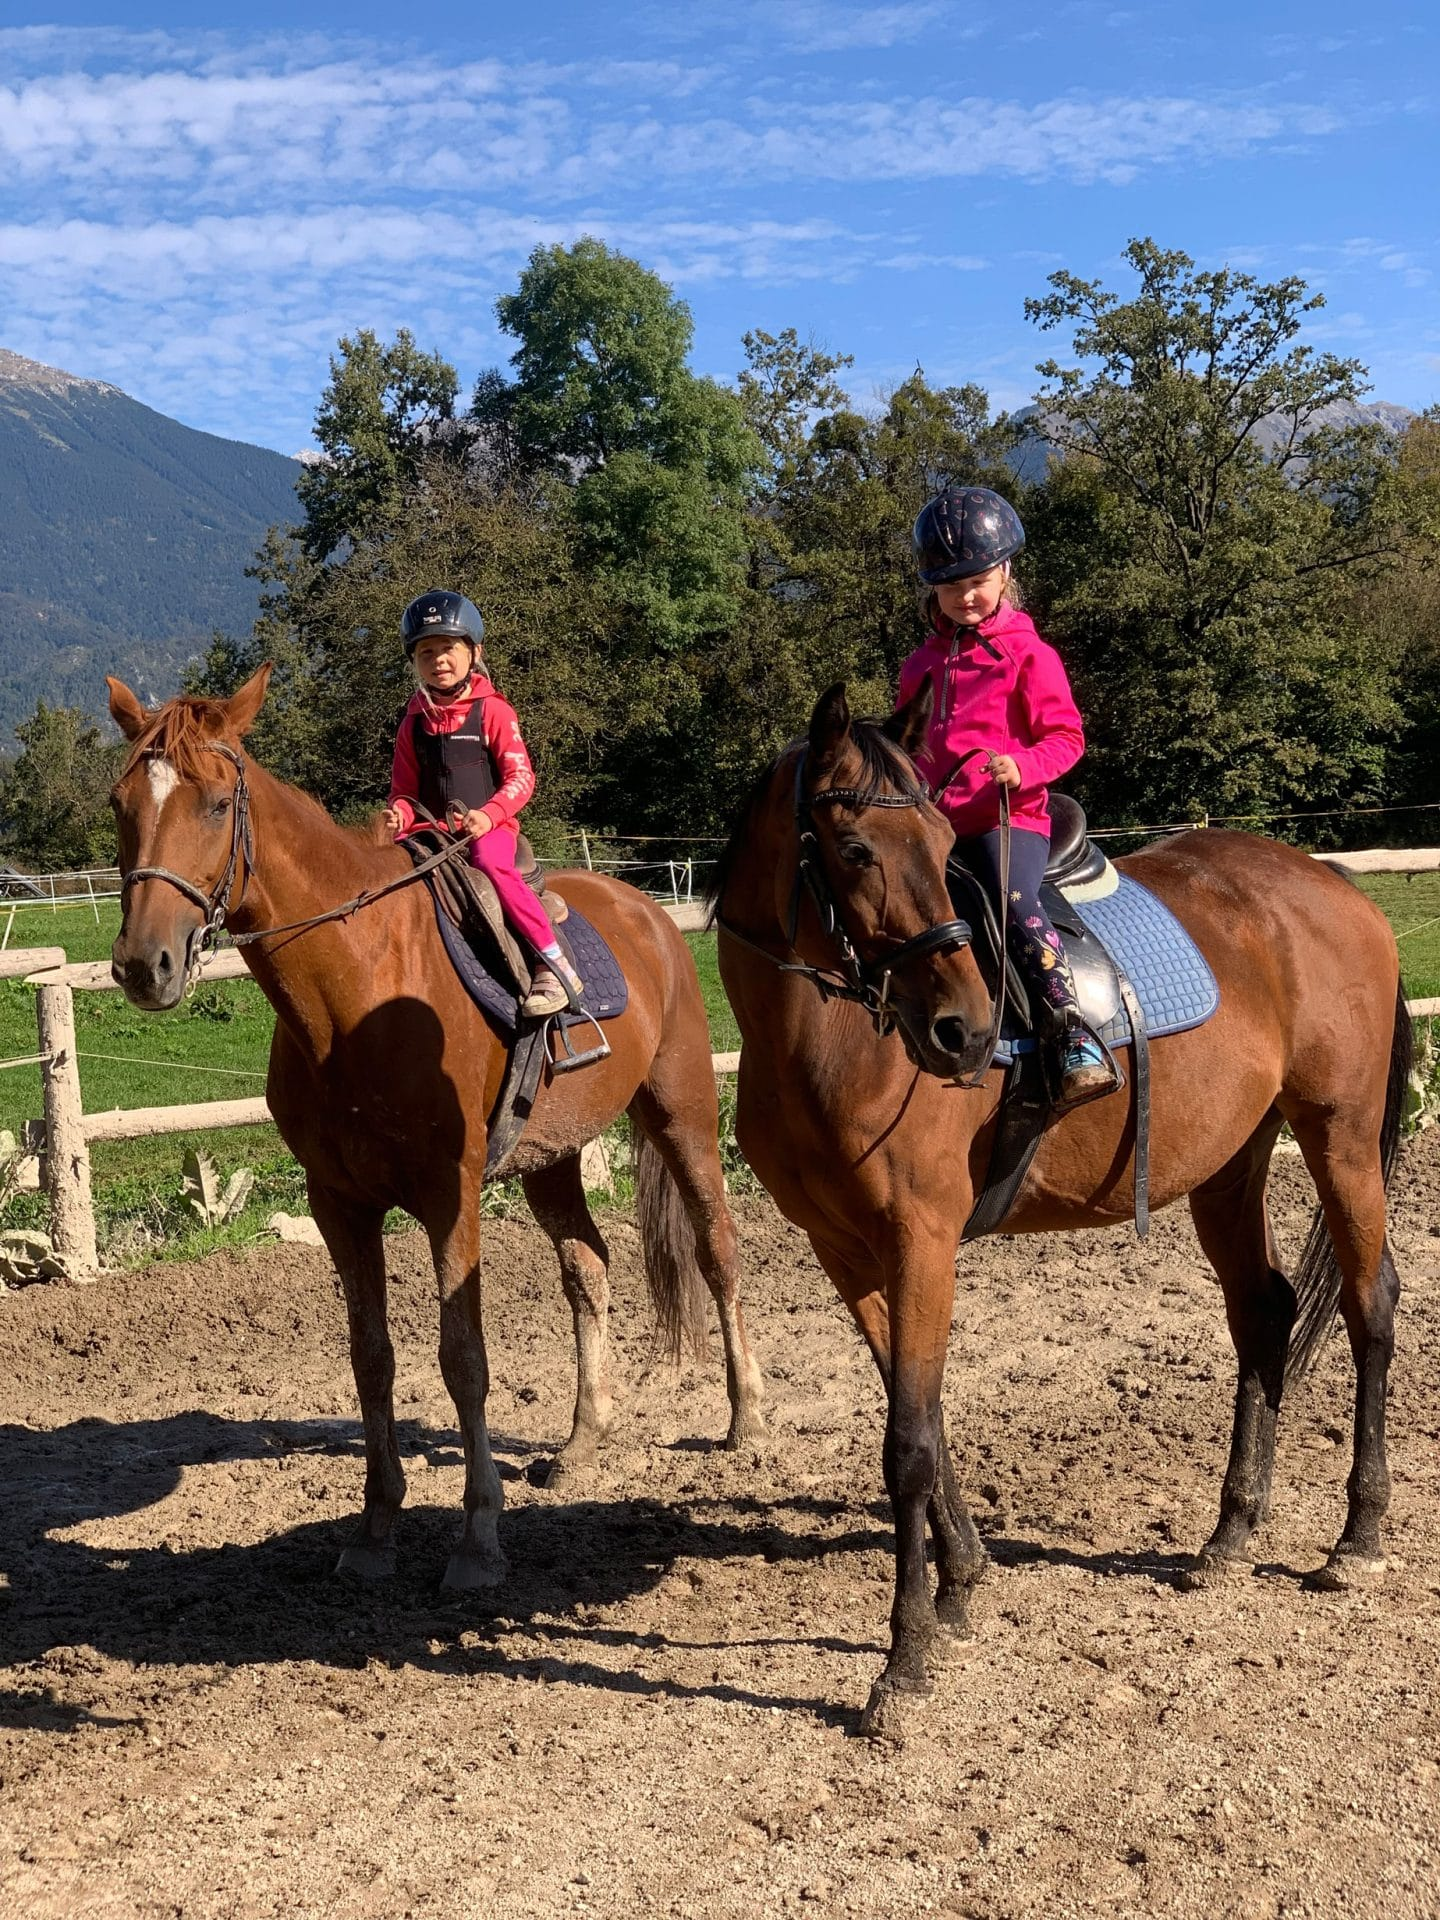 Children riding horses near Bled